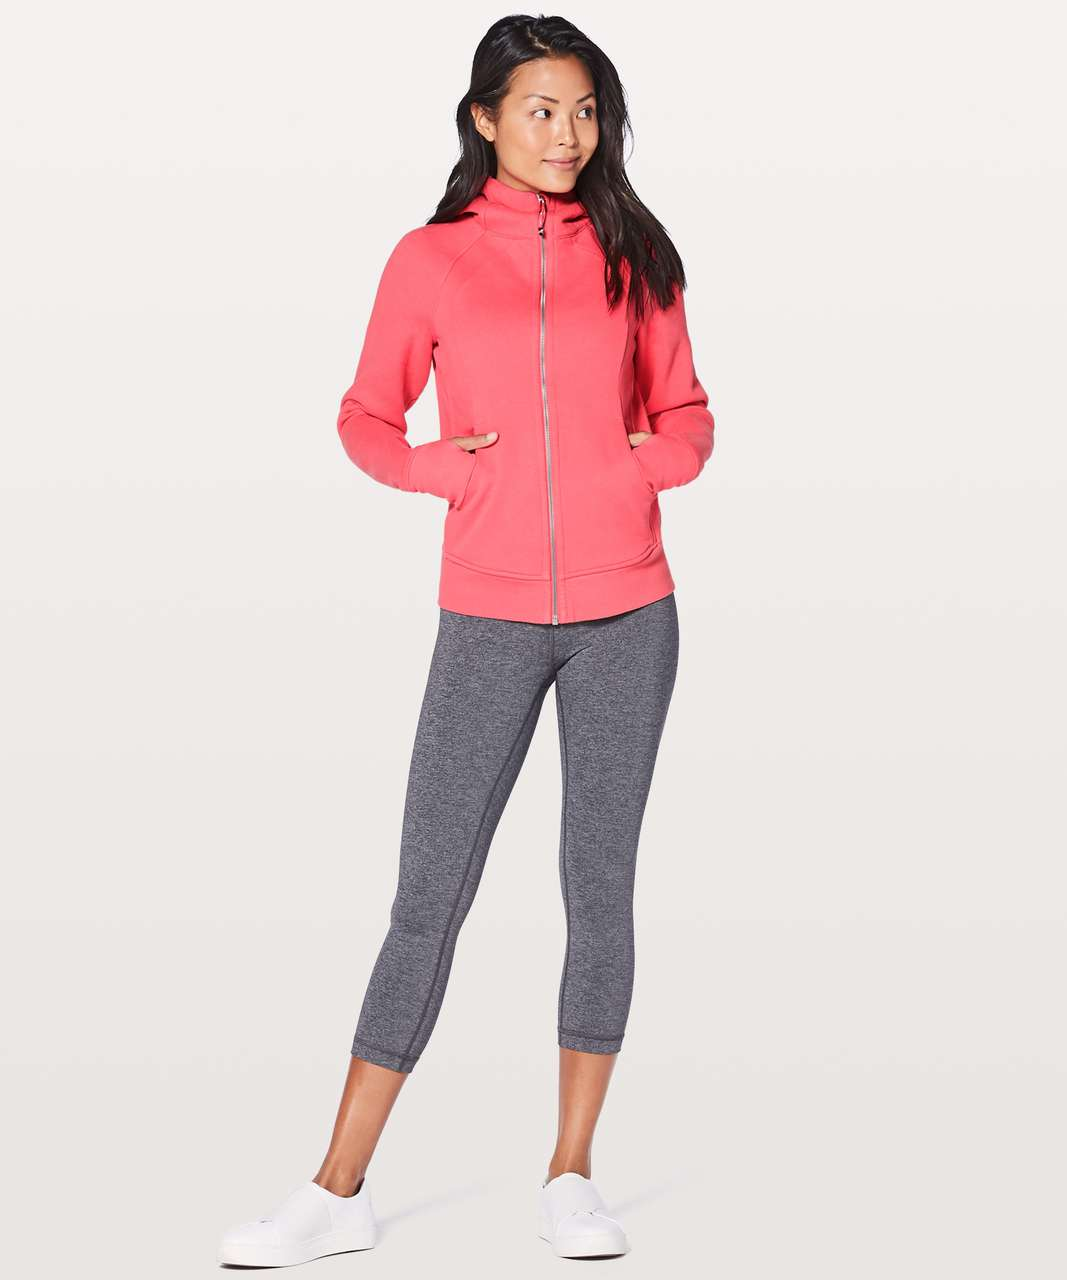 Lululemon Scuba Hoodie *Light Cotton Fleece - Flash Light Tone